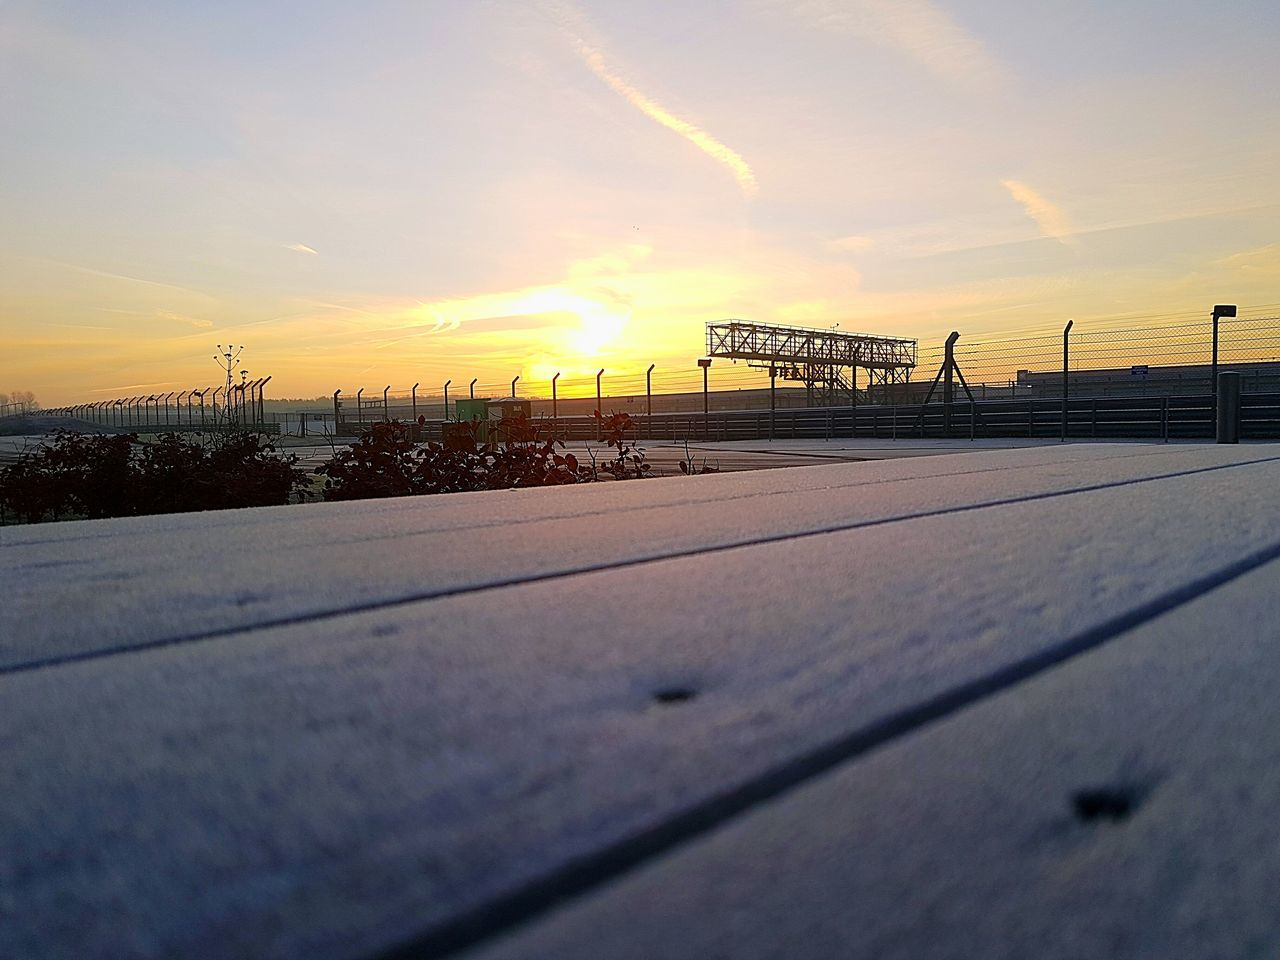 Early frozen morning at Silverstone Race track Sunset Sky Dramatic Sky Cold Temperature Silverstone Race Racetrack First Eyeem Photo